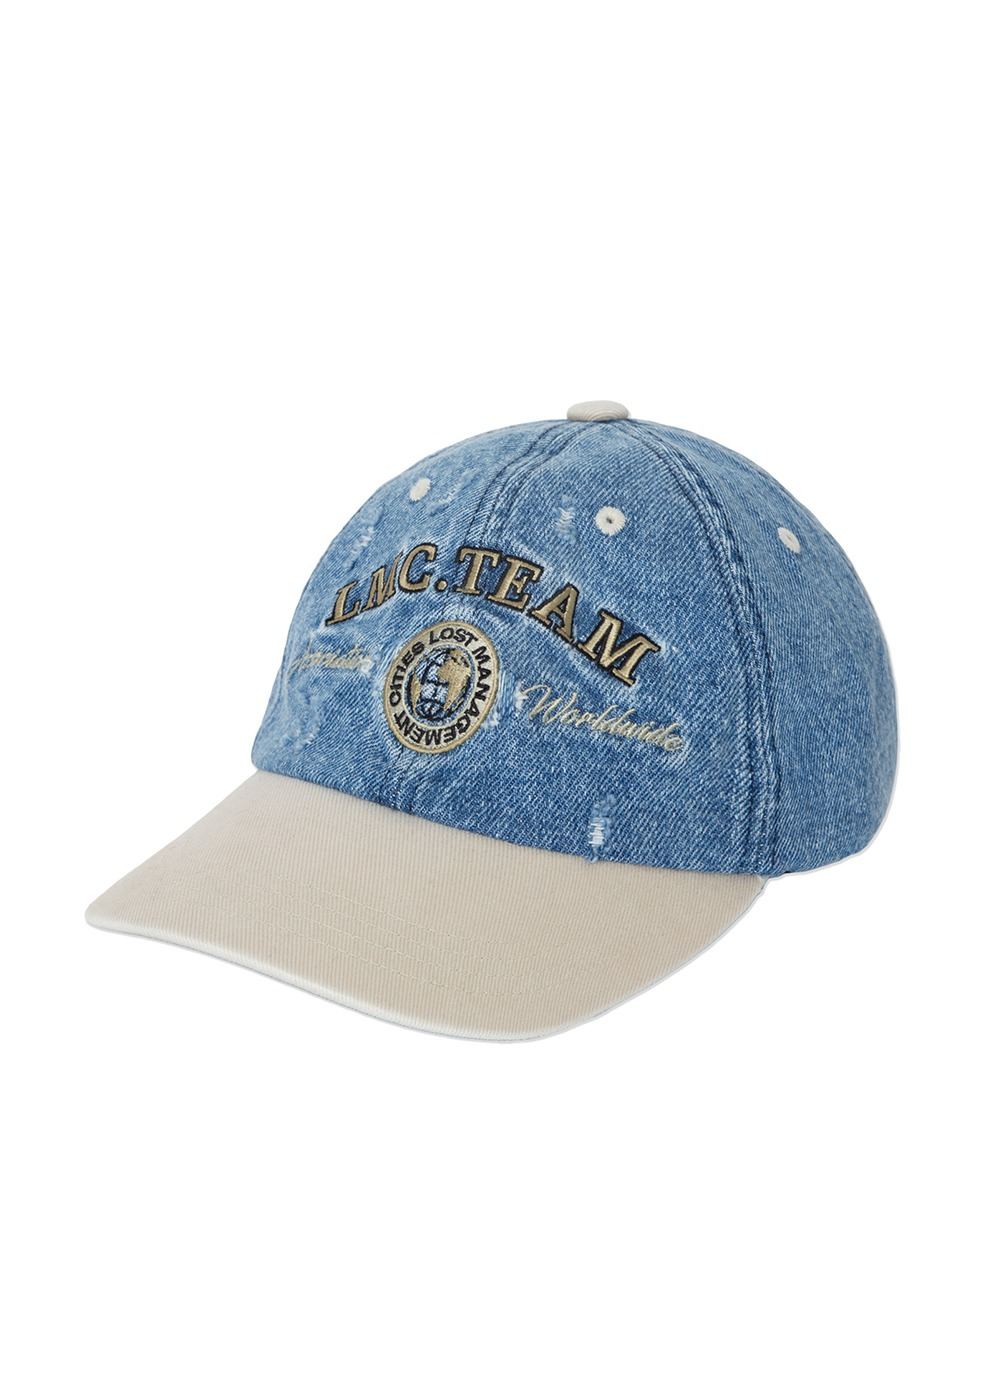 LMC TWO TONE WASHED DENIM 6 PANEL CAP blue